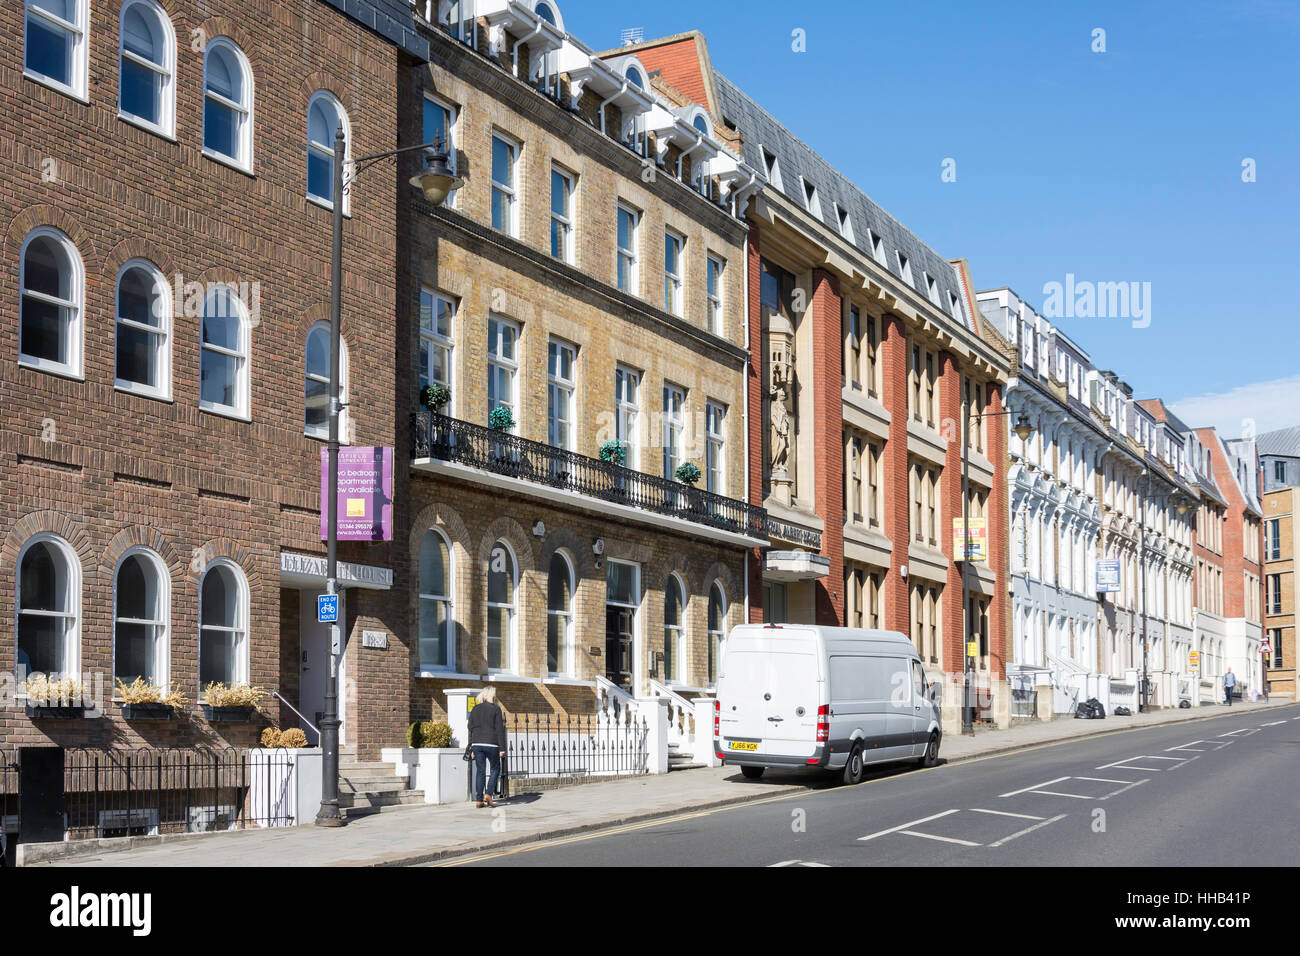 Period buildings, Sheet Street, Windsor, Berkshire, England, United Kingdom - Stock Image